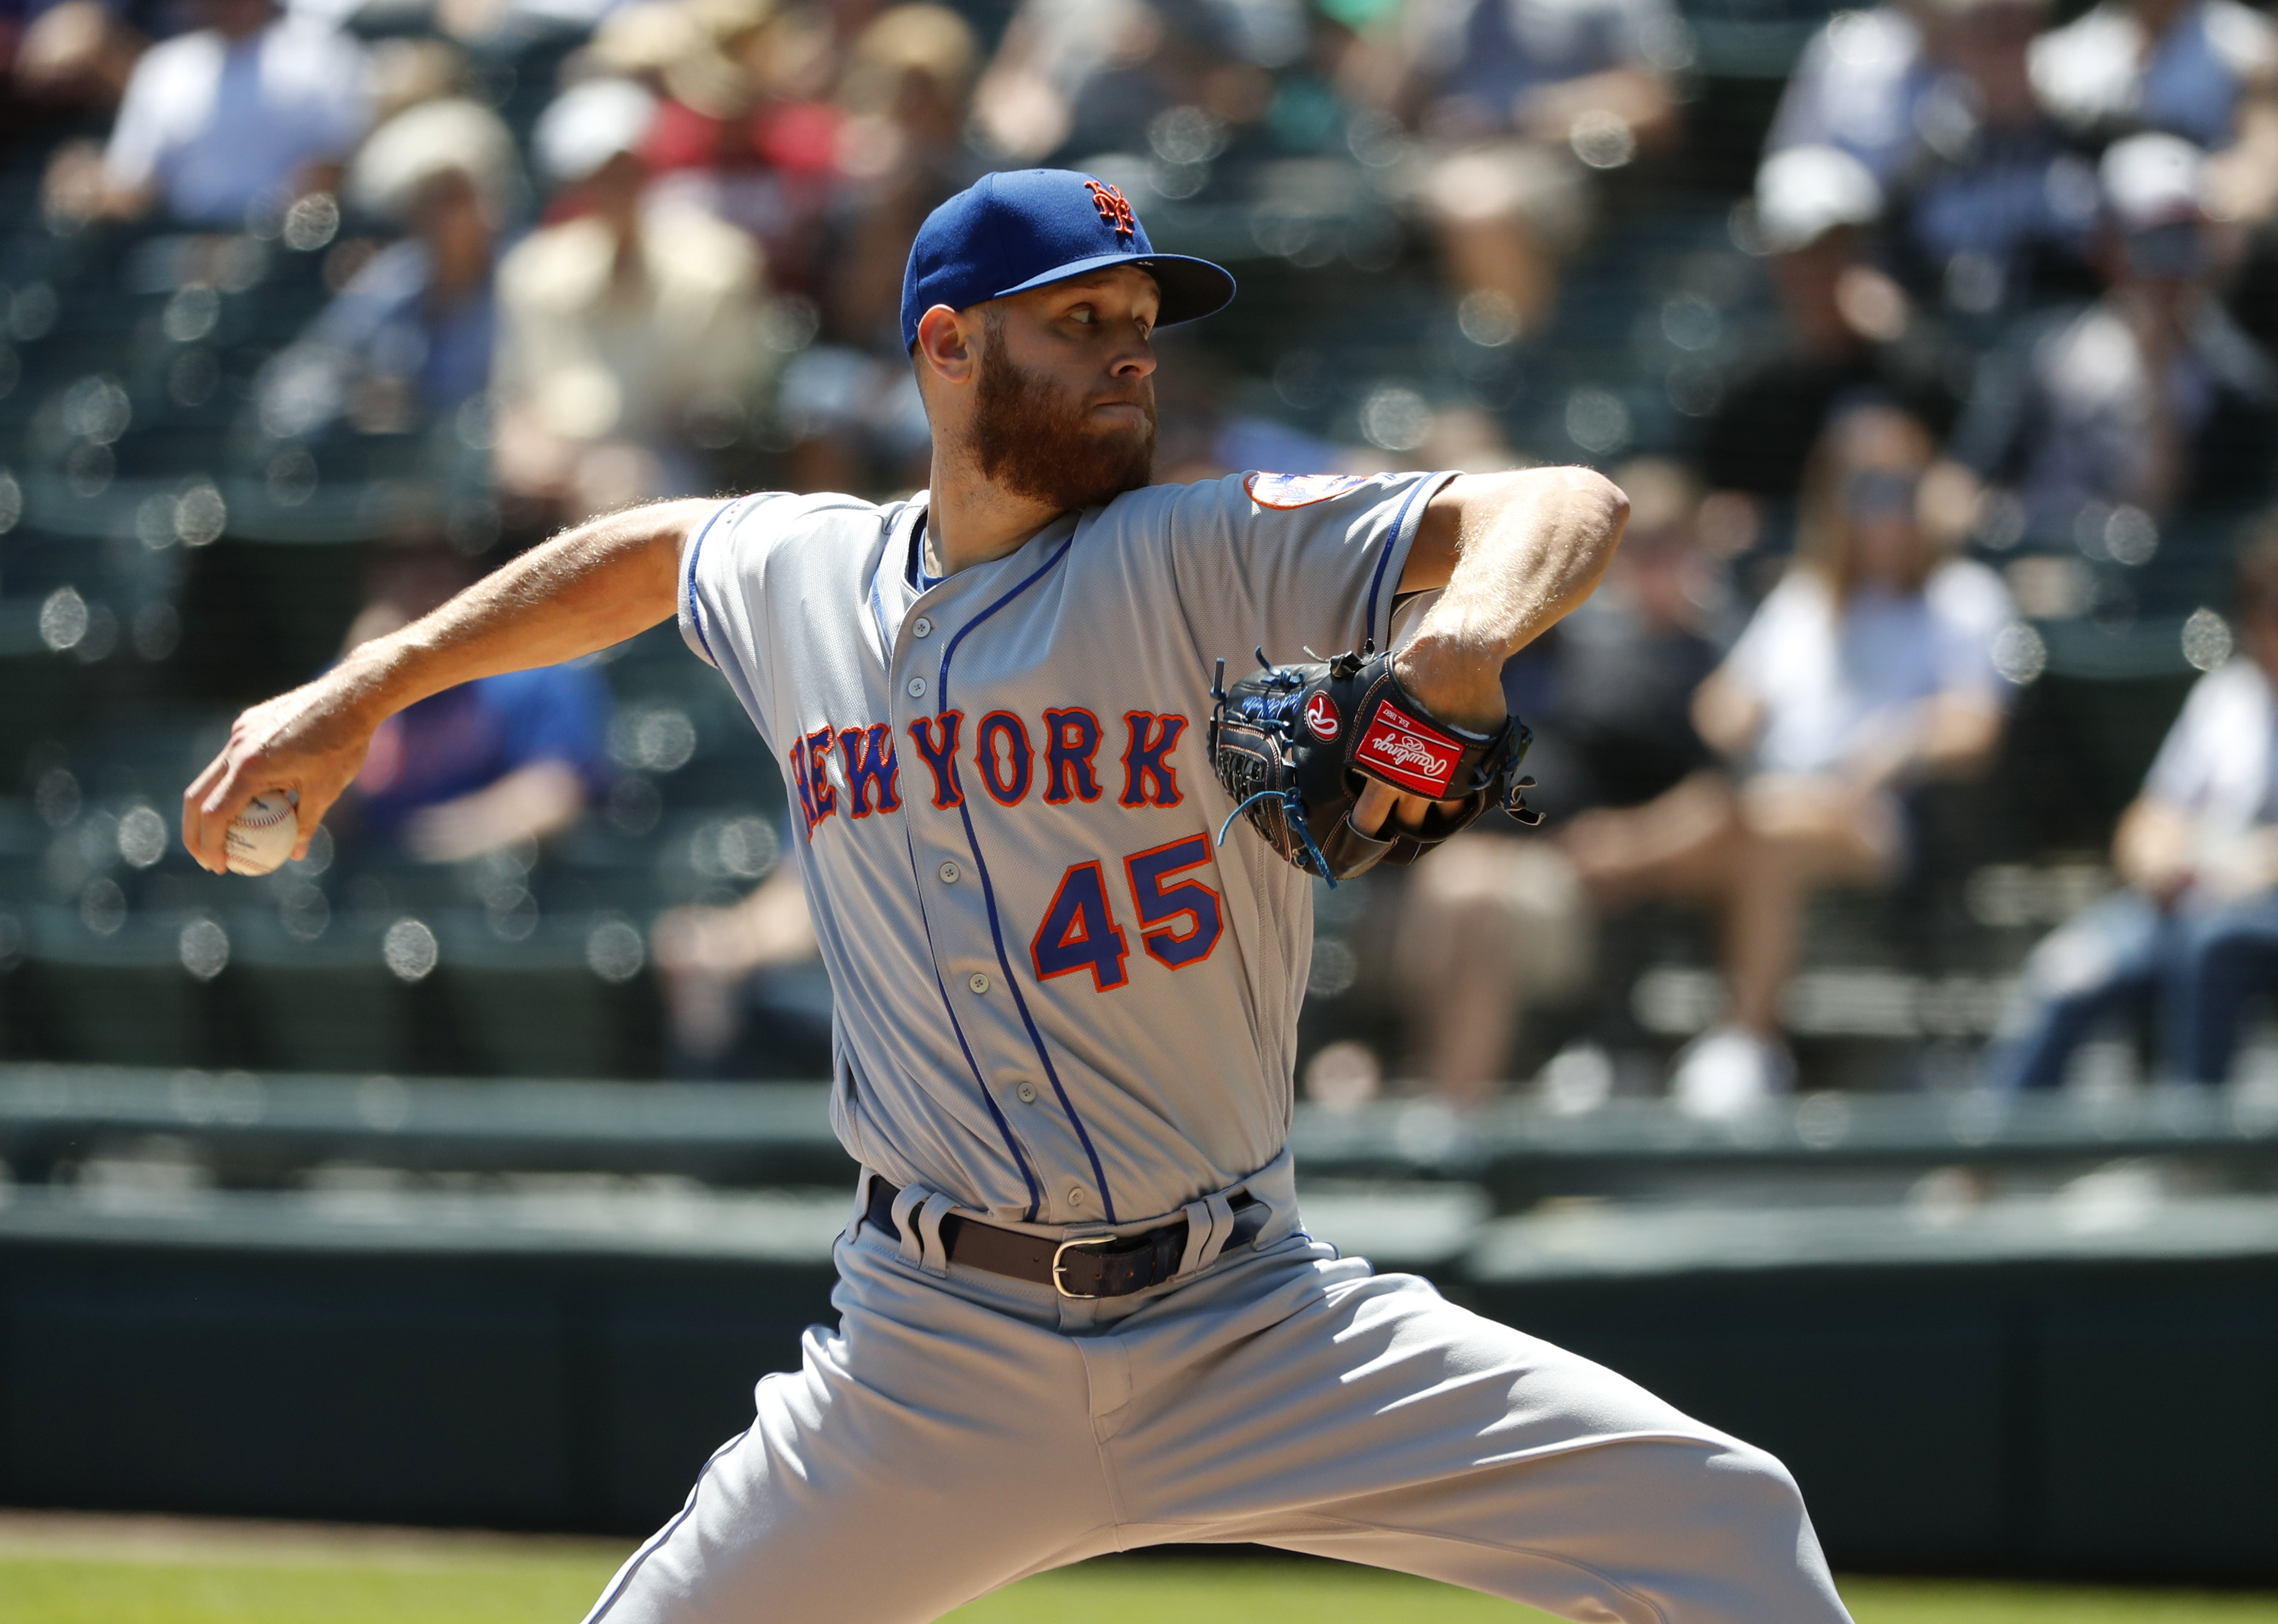 Pitcher Zack Wheeler won't be coming to the South Side. The free agent has reportedly agreed to a five-year, $118 million deal with the Phillies. The White Sox were among the teams courting him.